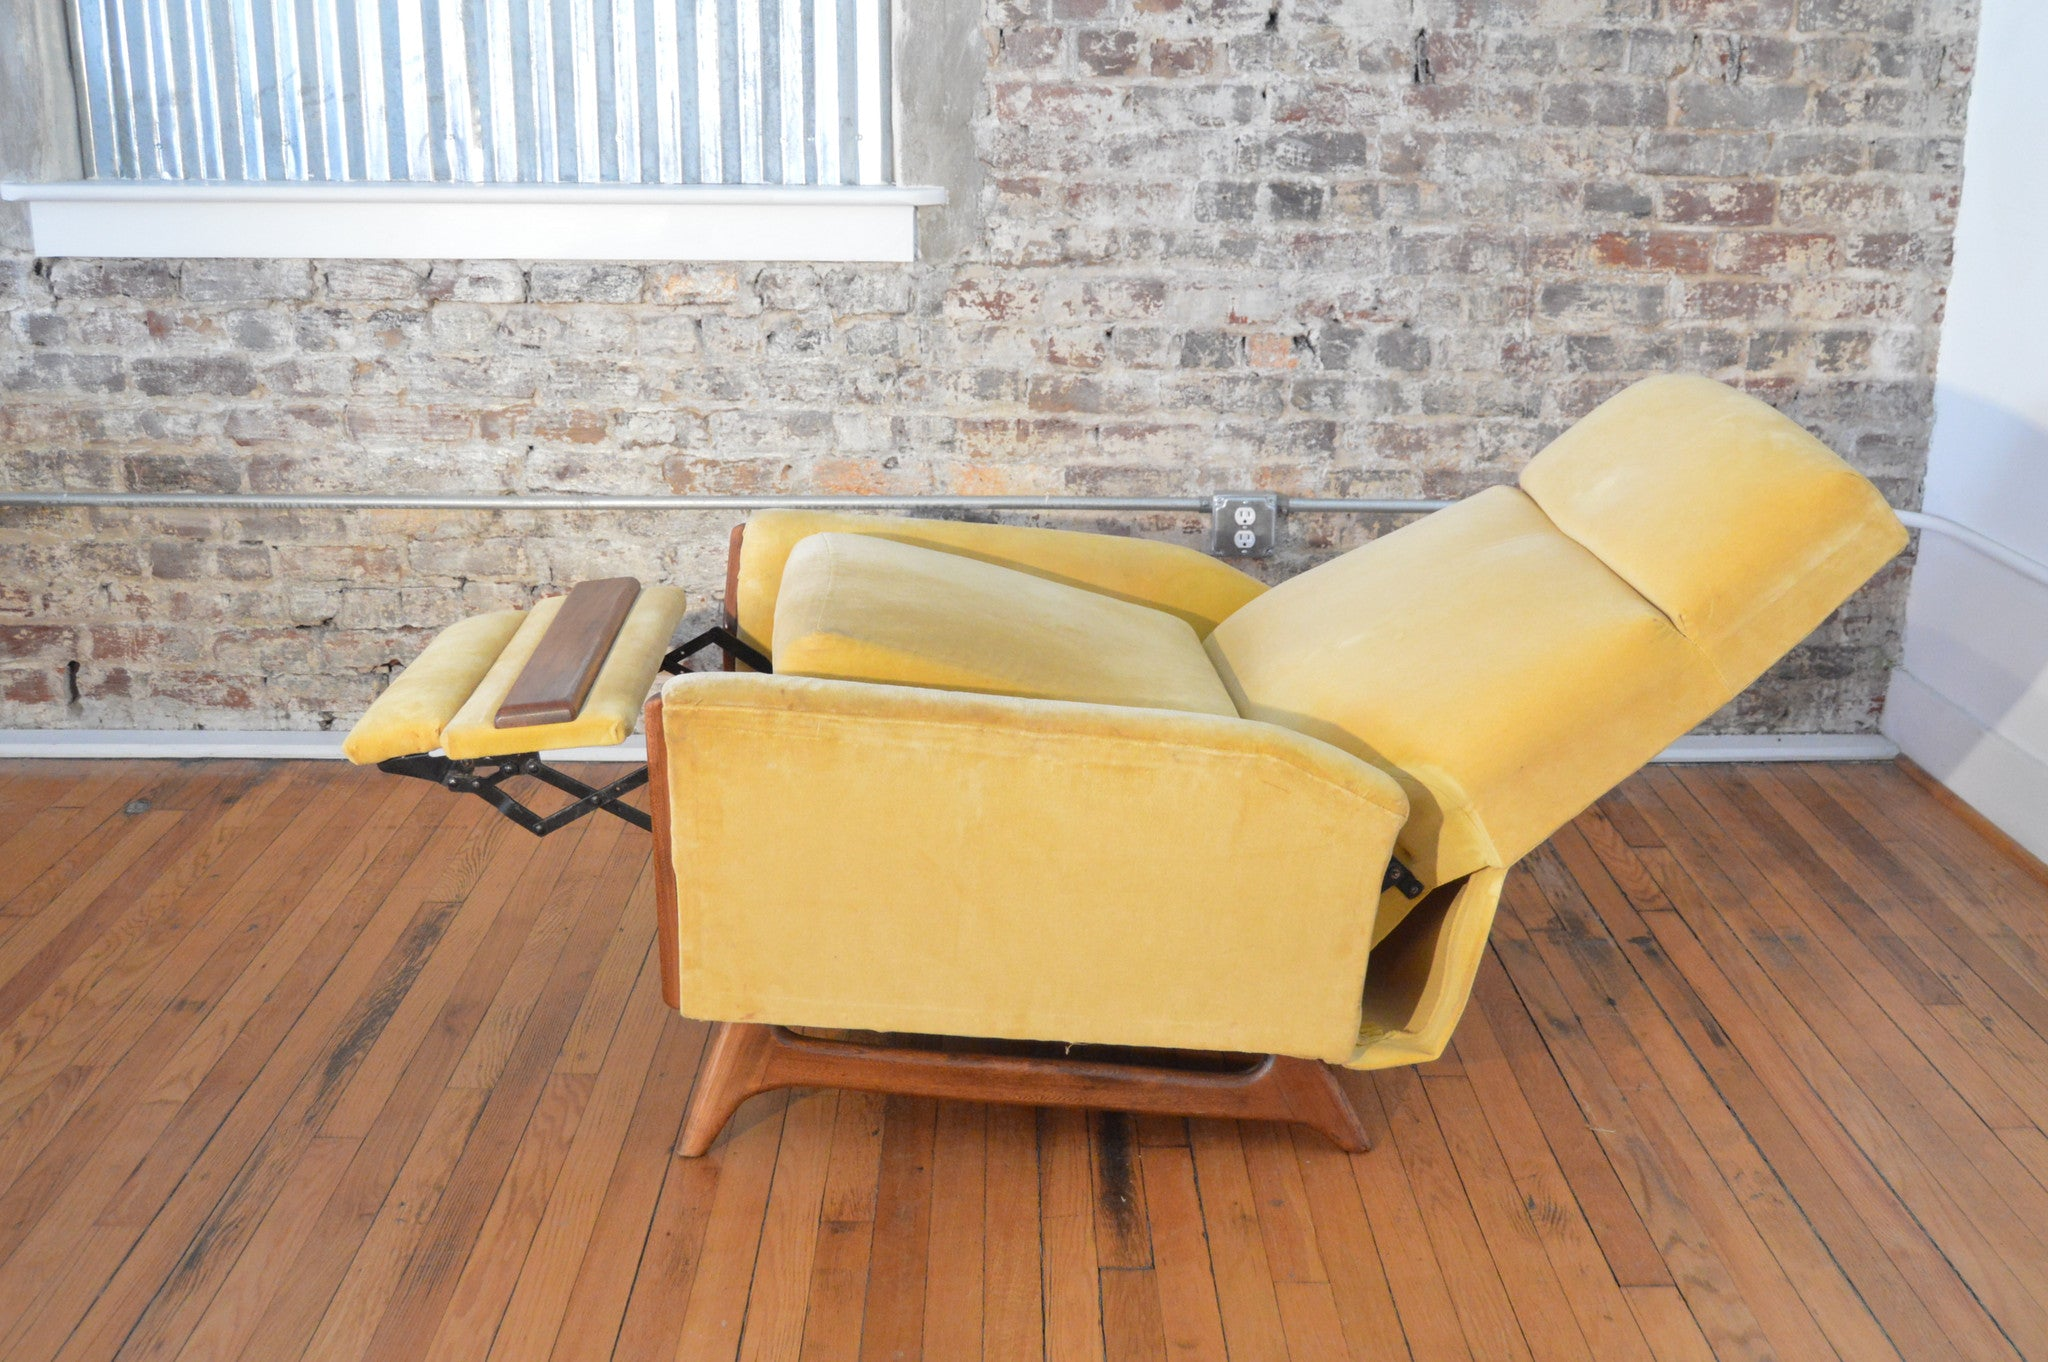 mid century modern recliner by adrian pearsall in yellow velvet upholstery. mid century modern recliner by adrian pearsall in yellow velvet